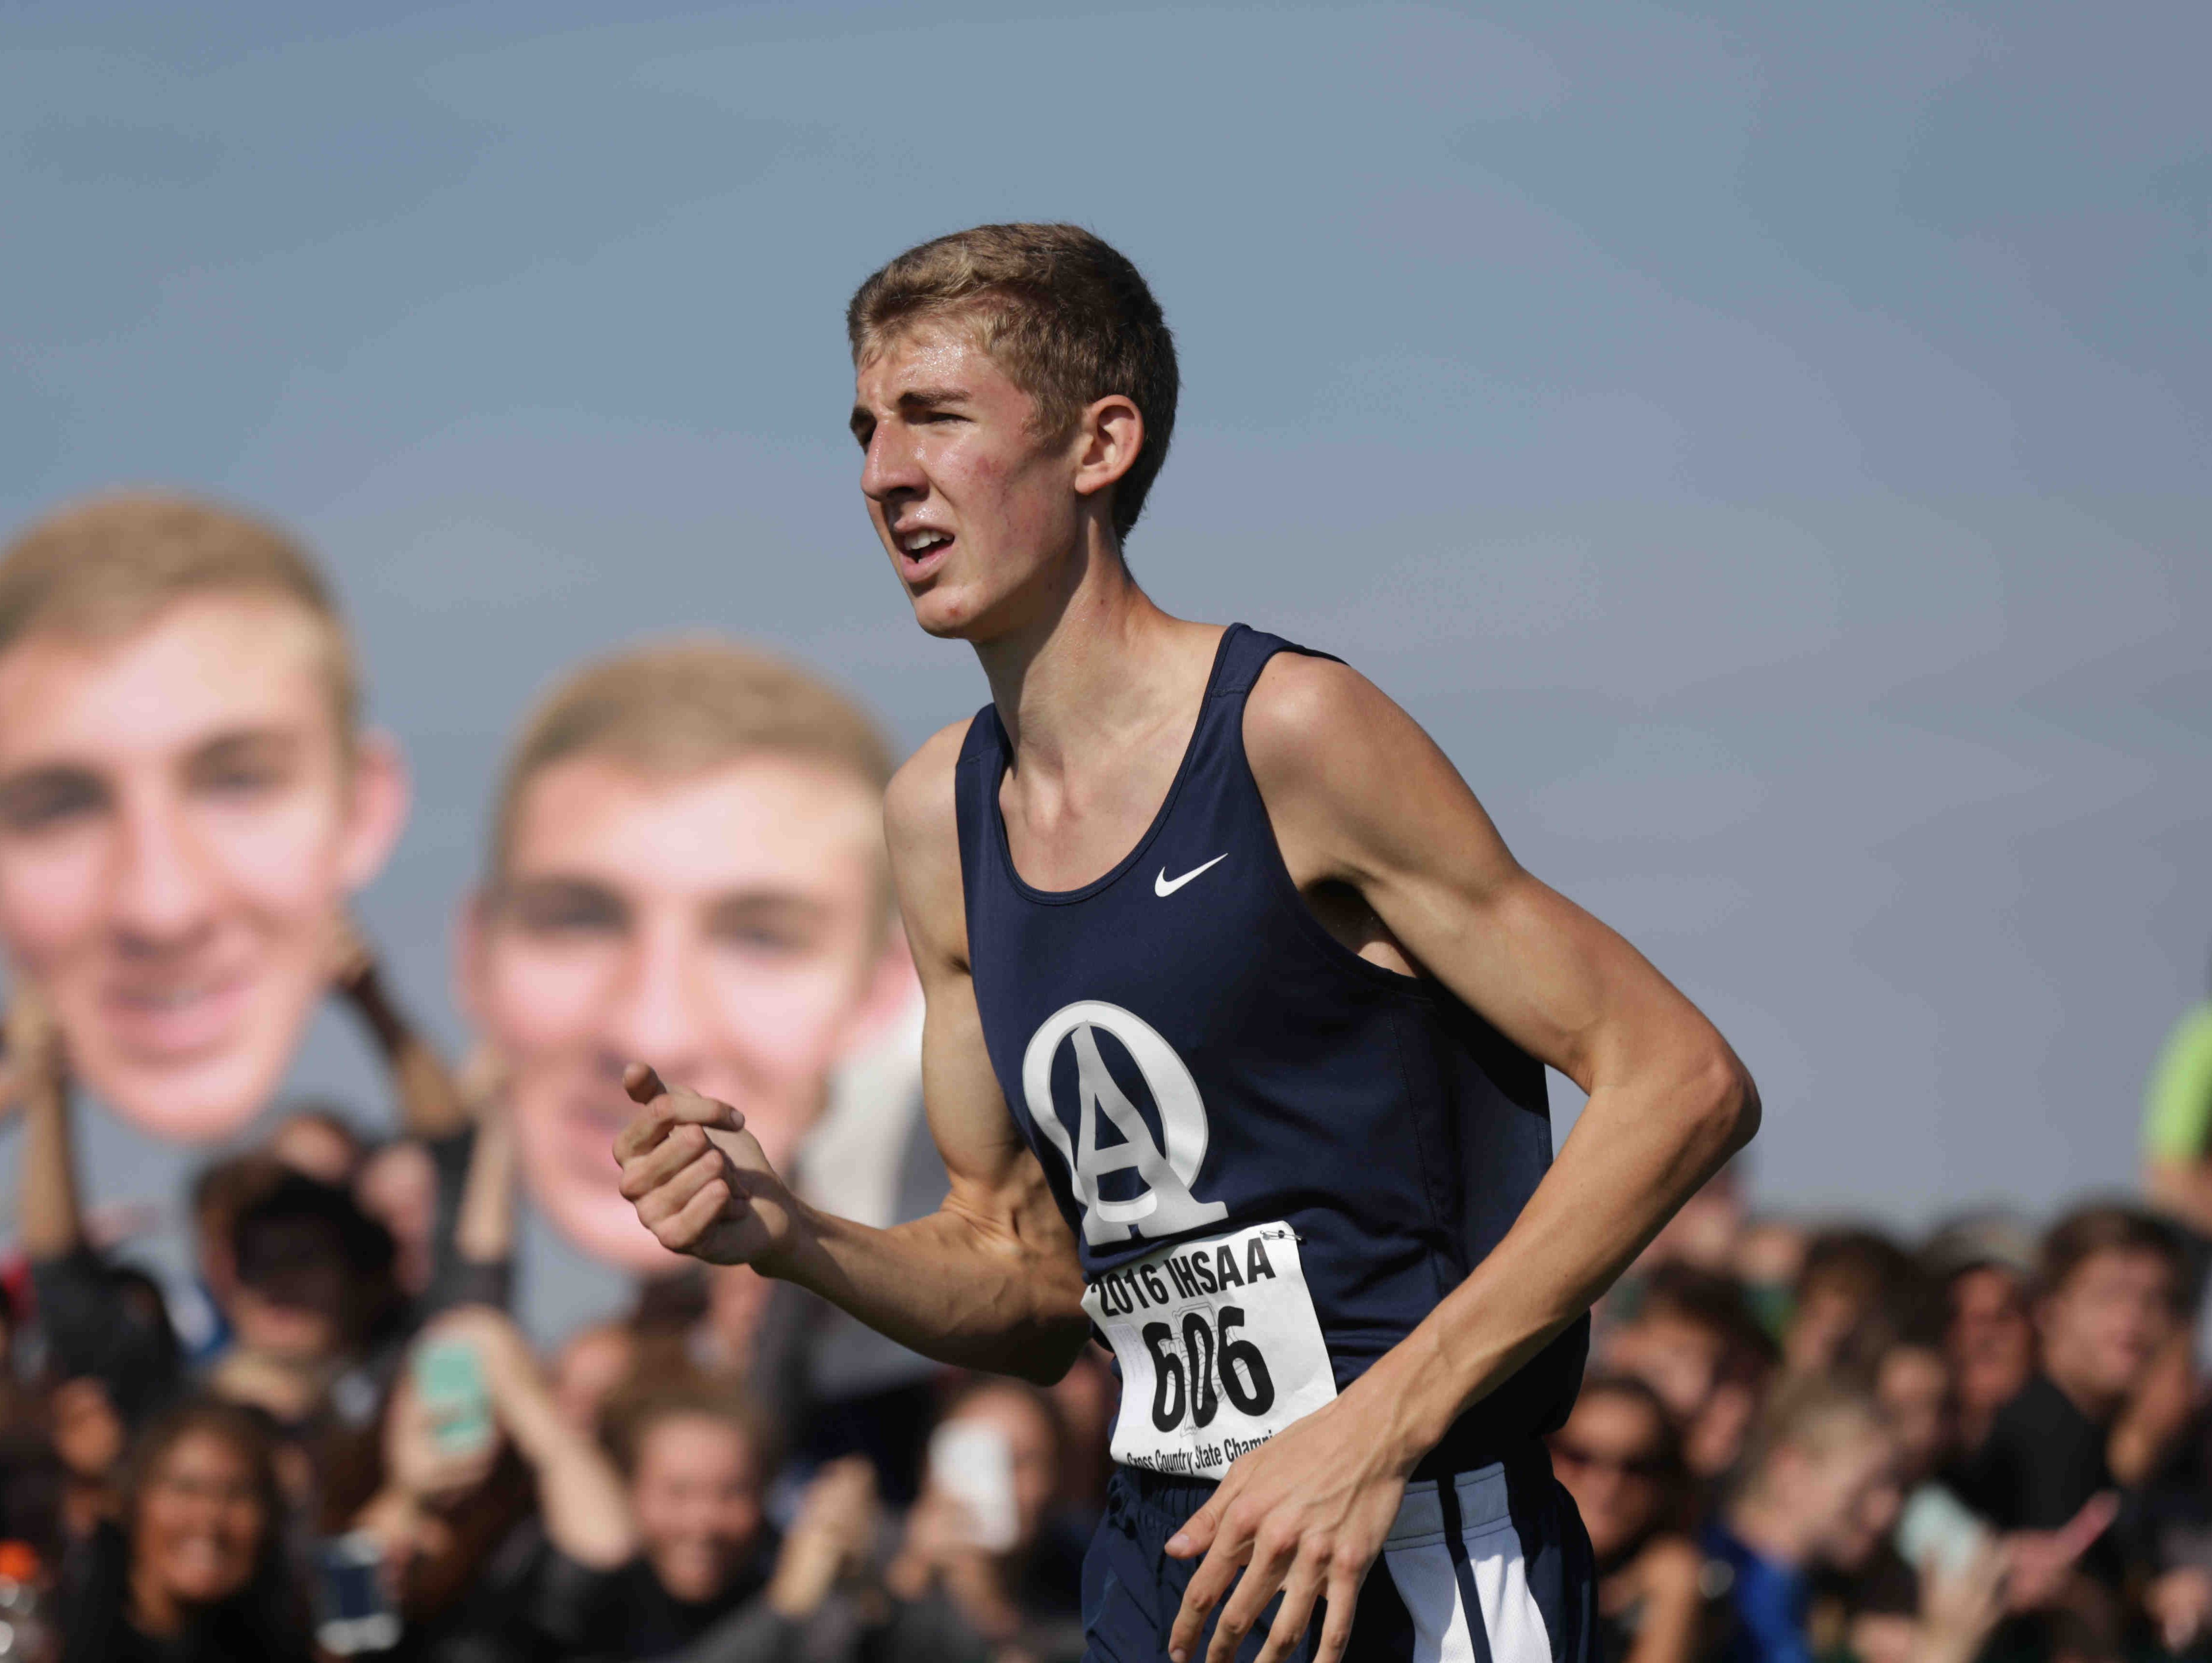 Oldenburg Academy's Curtis Eckstein improved on his third place finish from a year ago by winning the boys race Saturday.